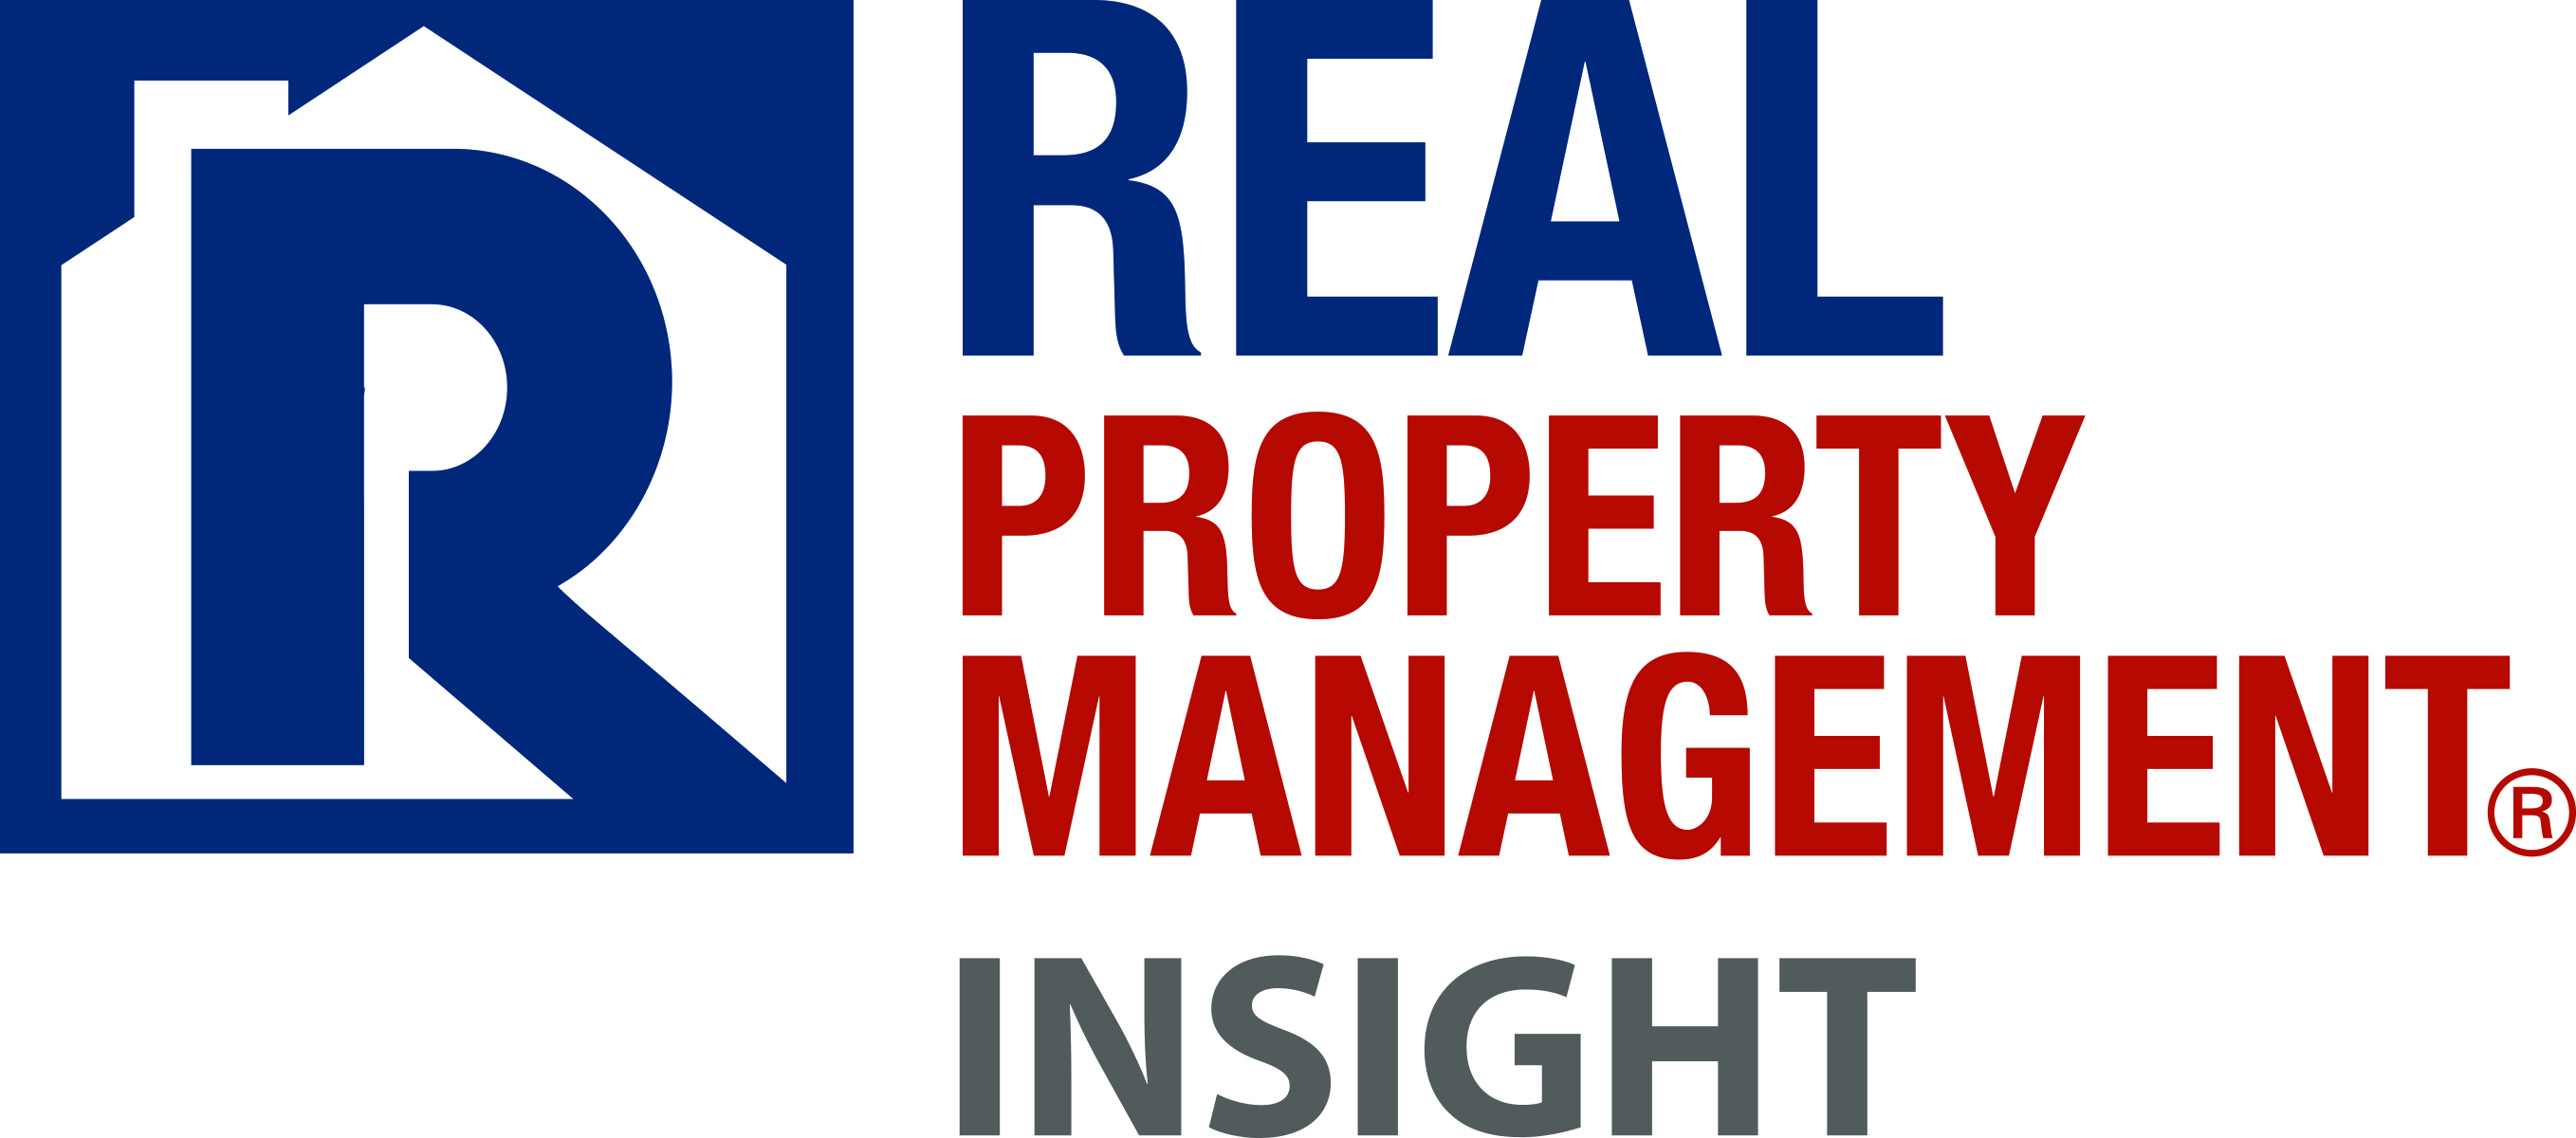 >Real Property Management Insight in New River Valley VA. The trusted leader for professional property management services.